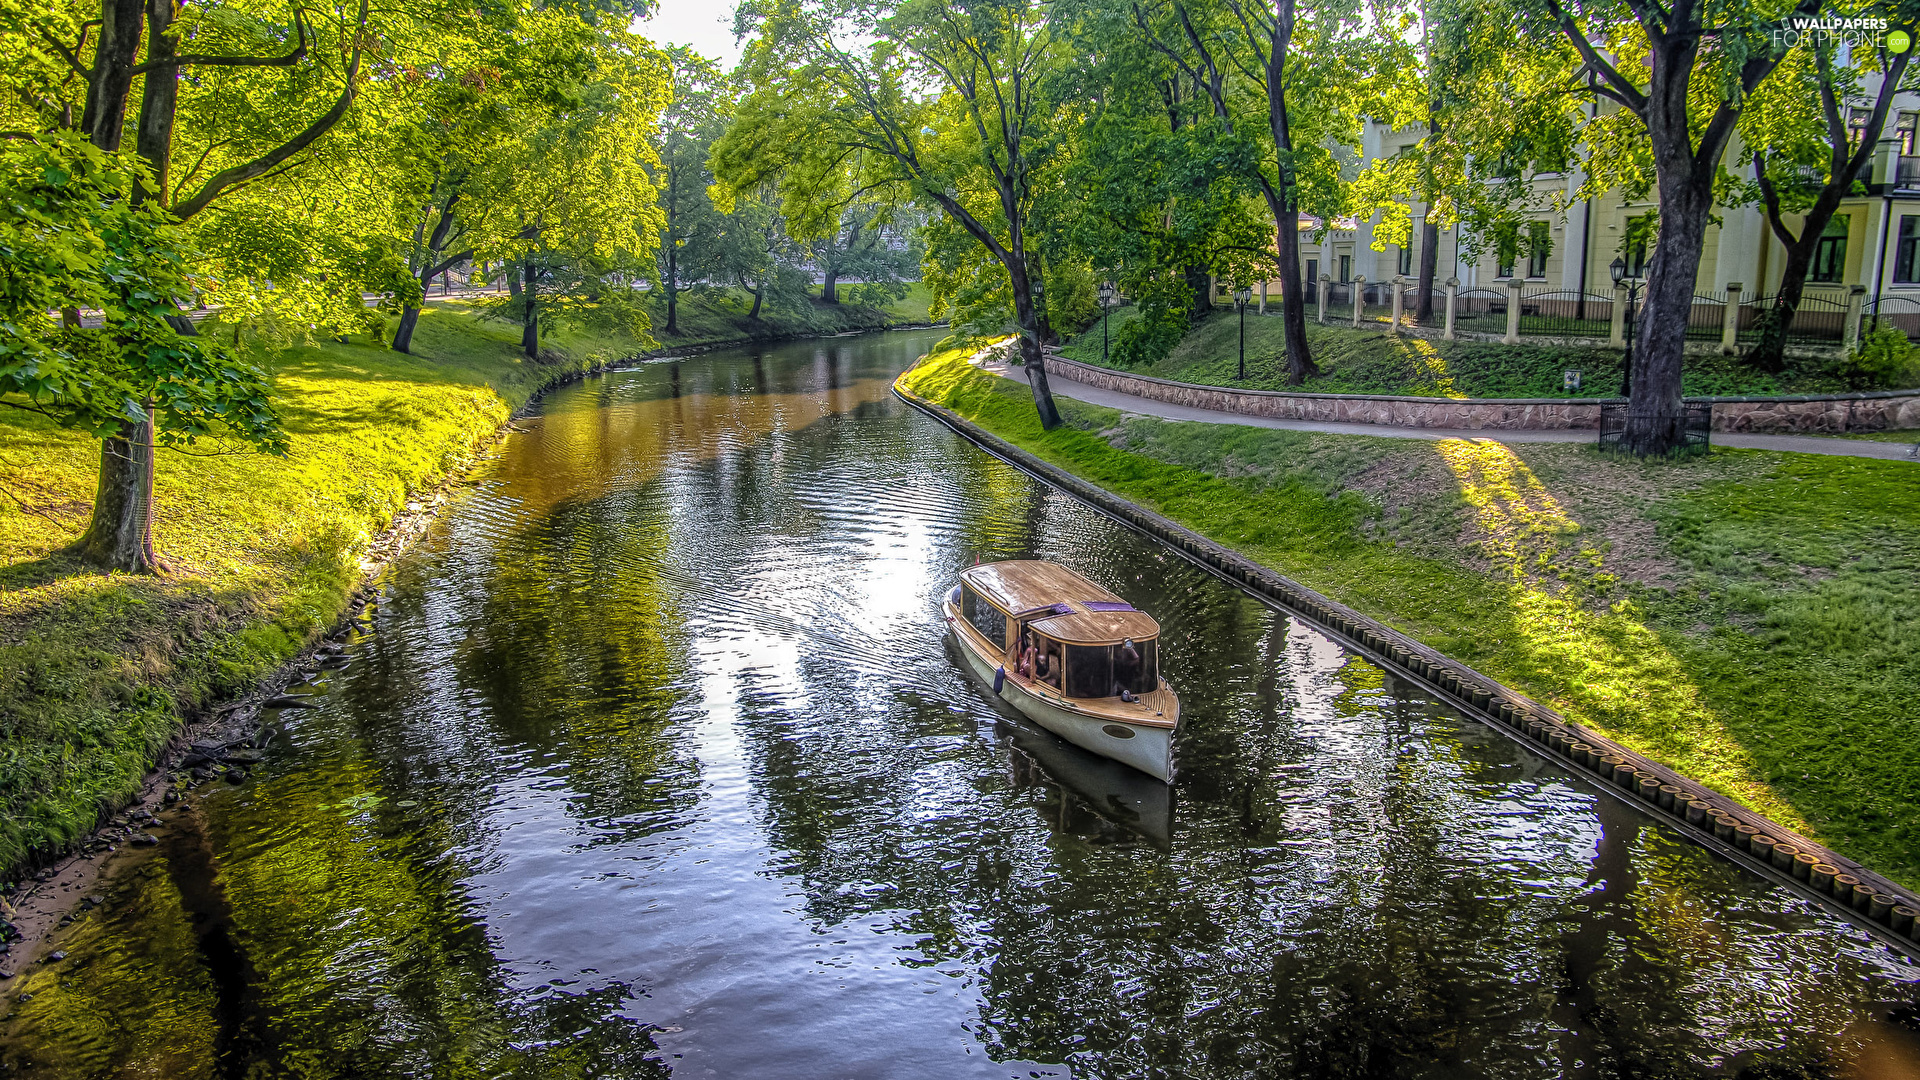 green ones, River, viewes, Motor boat, Park, trees, house